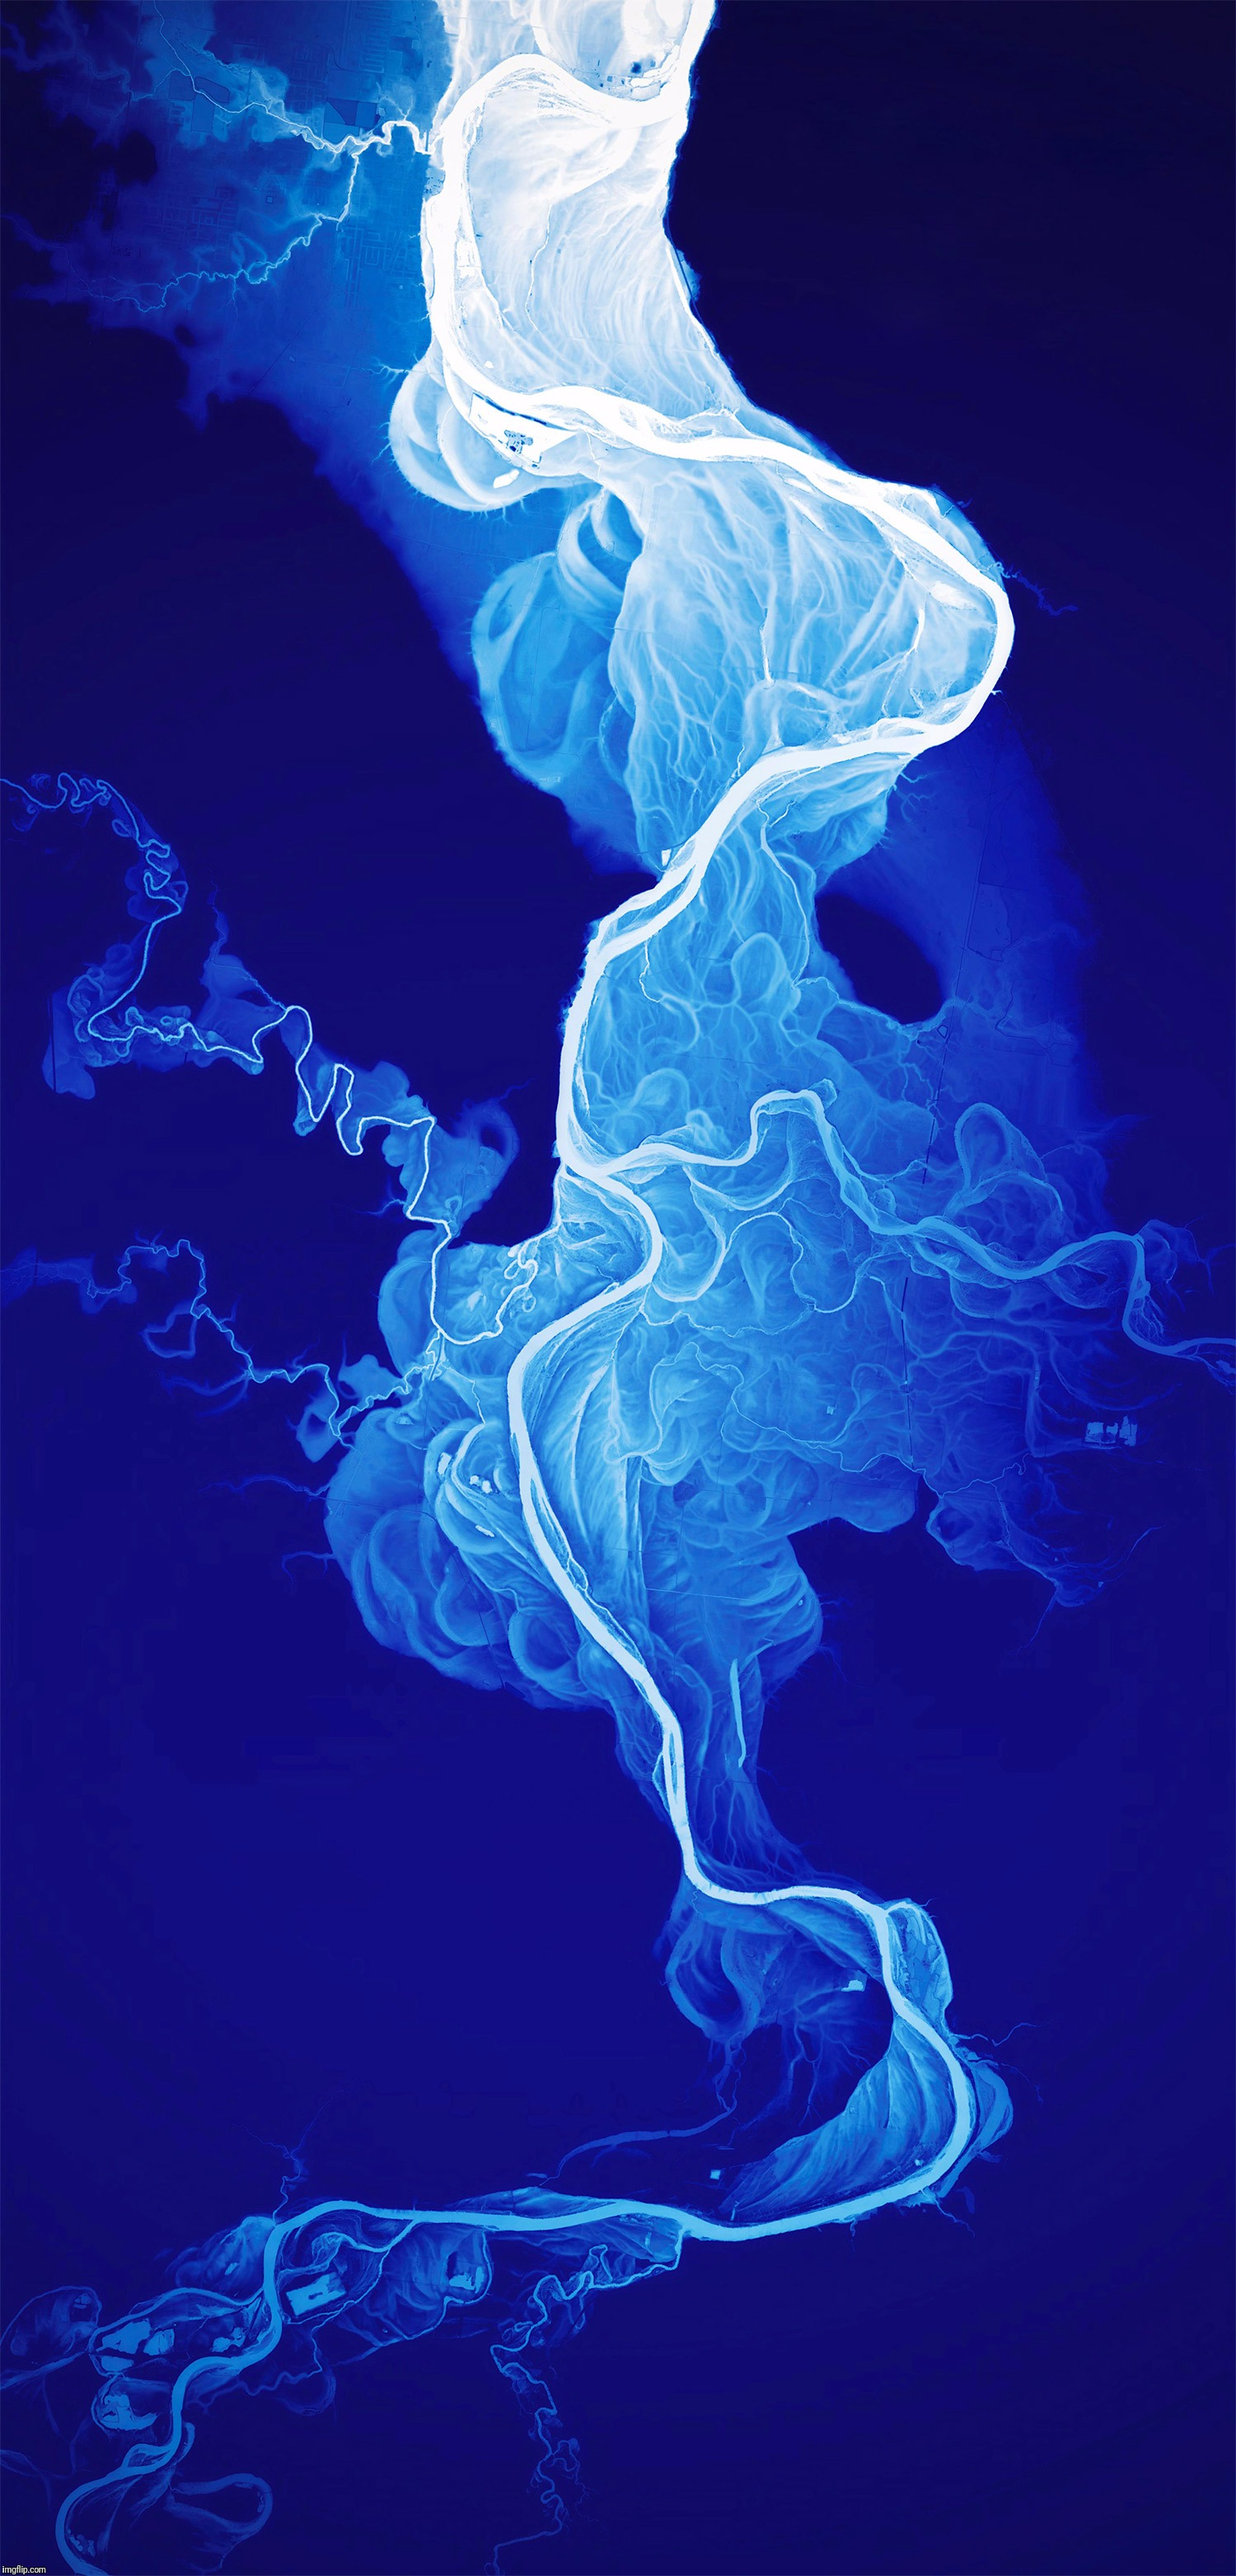 Willamette River Historical Stream Channels |  WILLAMETTE RIVER; HISTORICAL STREAM CHANNELS | image tagged in earth,lidar,remote sensing,asprs | made w/ Imgflip meme maker